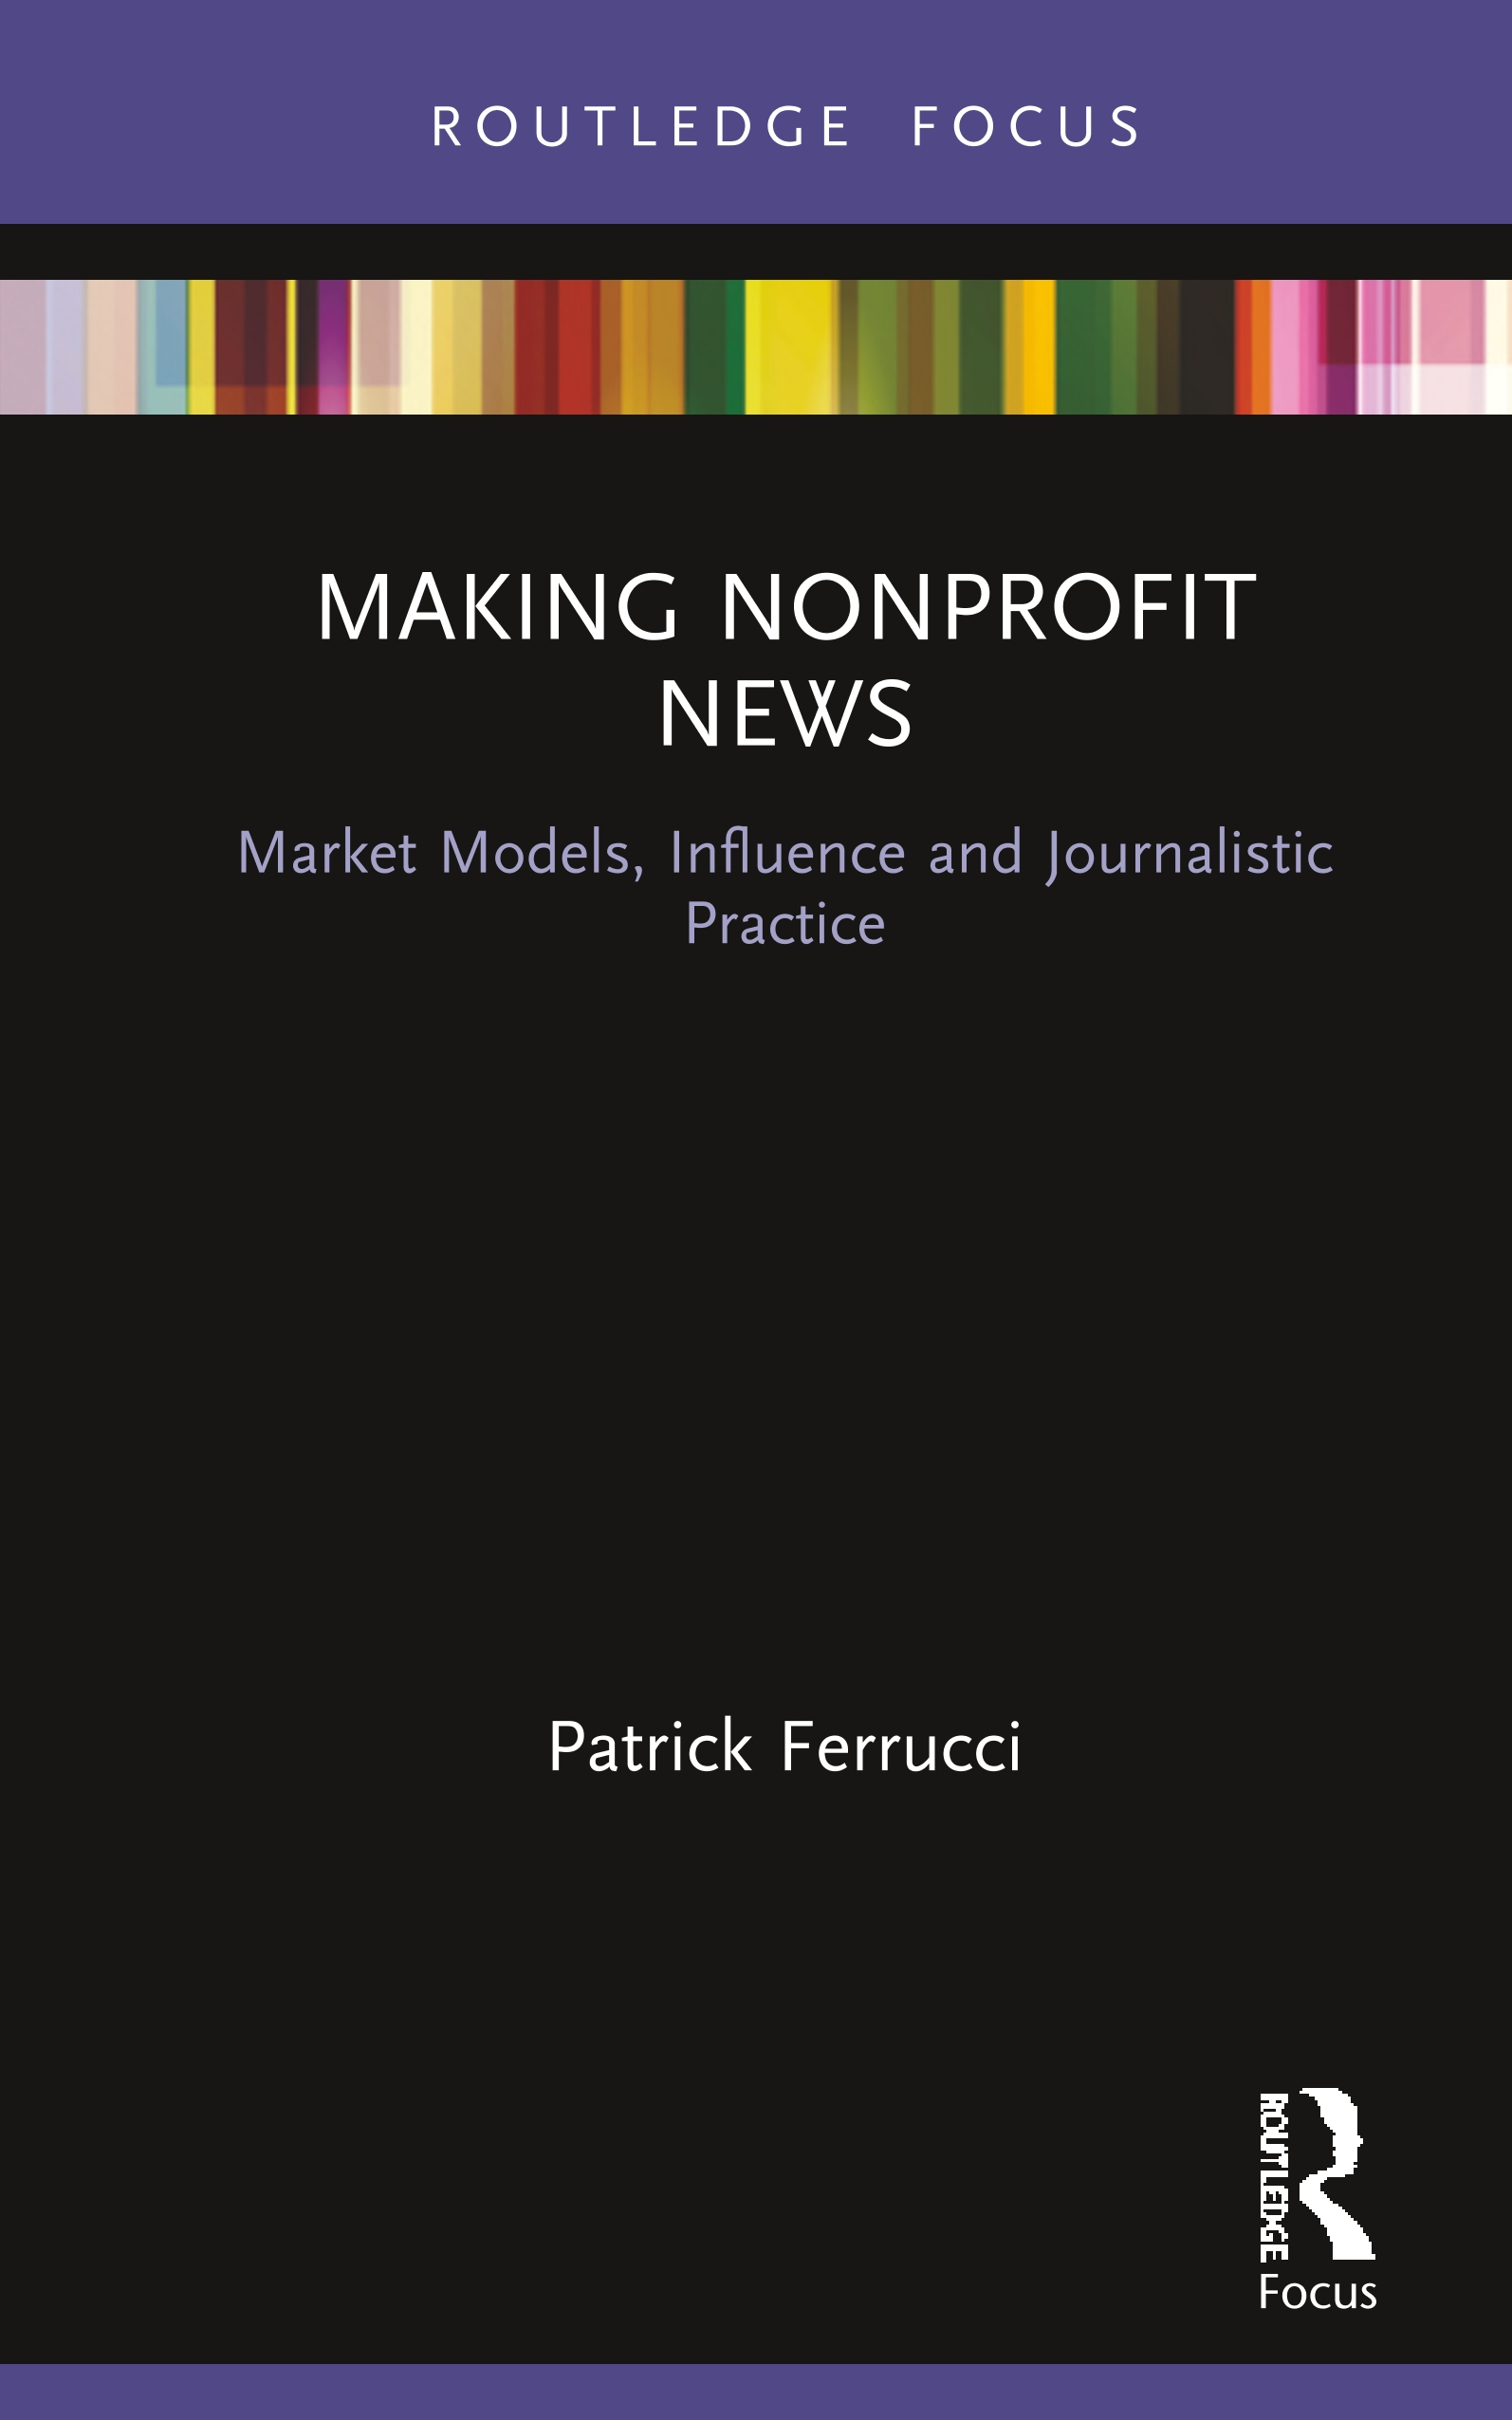 Making Nonprofit News: Market Models, Influence and Journalistic Practice book cover